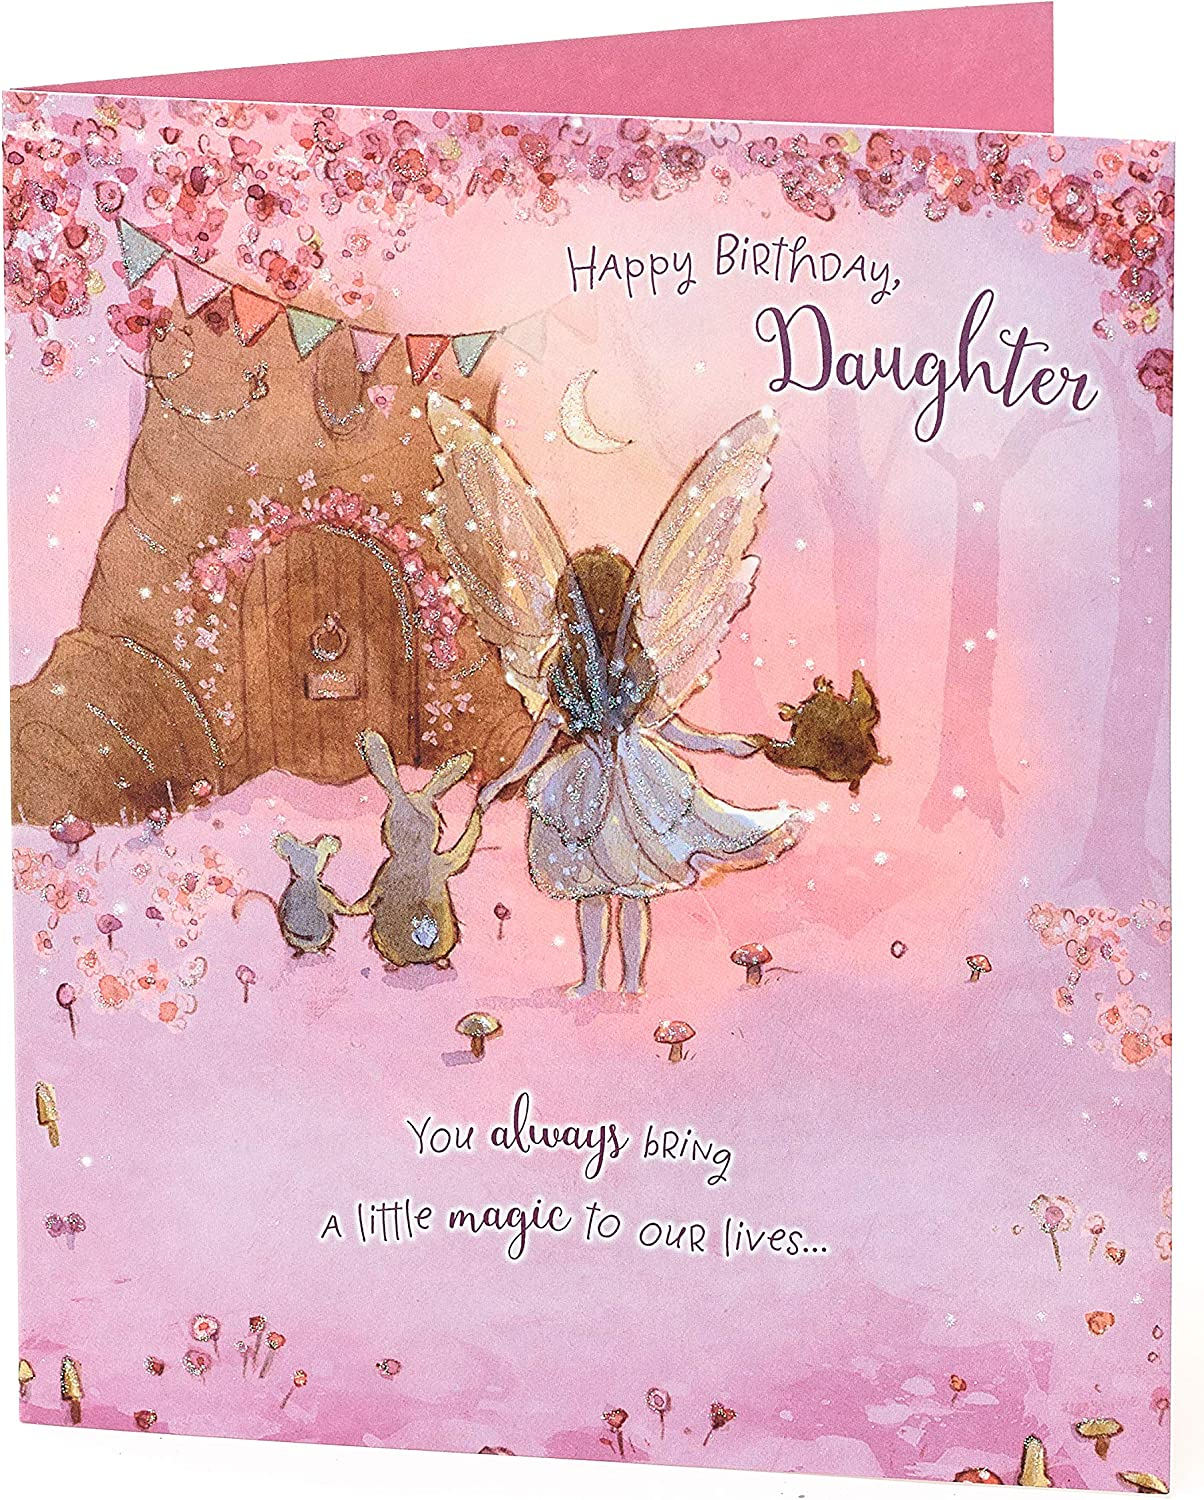 CHILDRENS HAPPY BIRTHDAY CARDS Daughter Funny My Little Fairy Kids Gift Bday